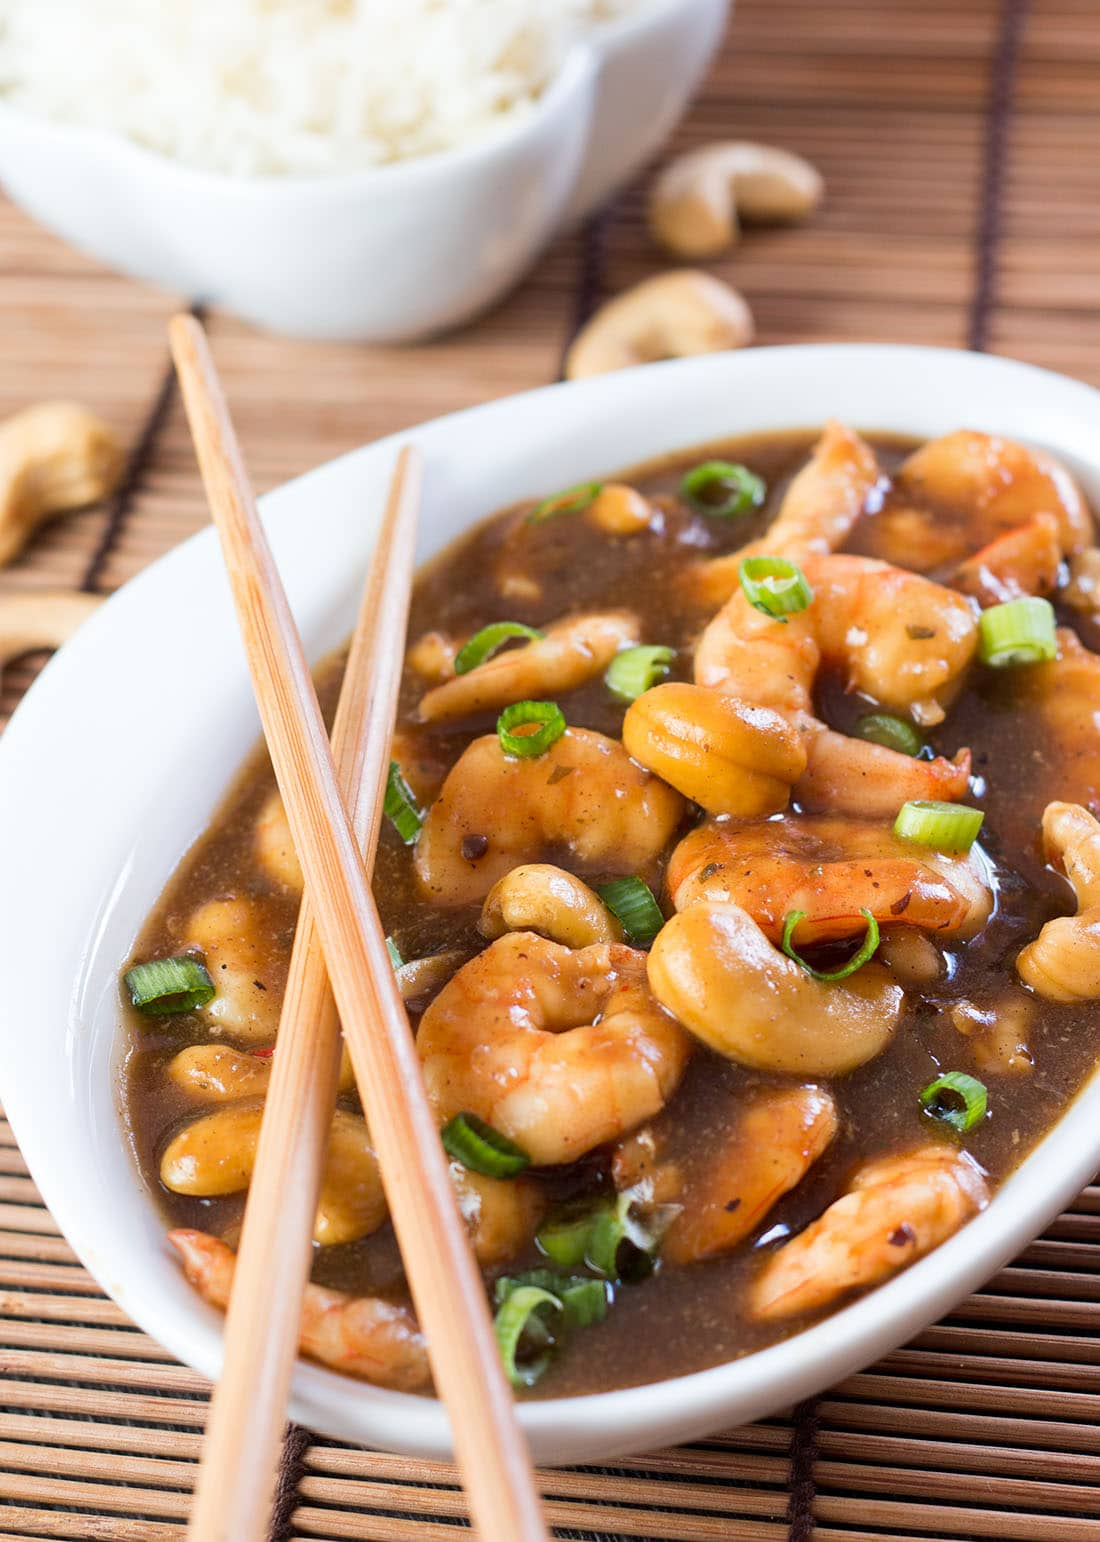 Cashew shrimp in a bowl with a bowl of fluffy rice in the background